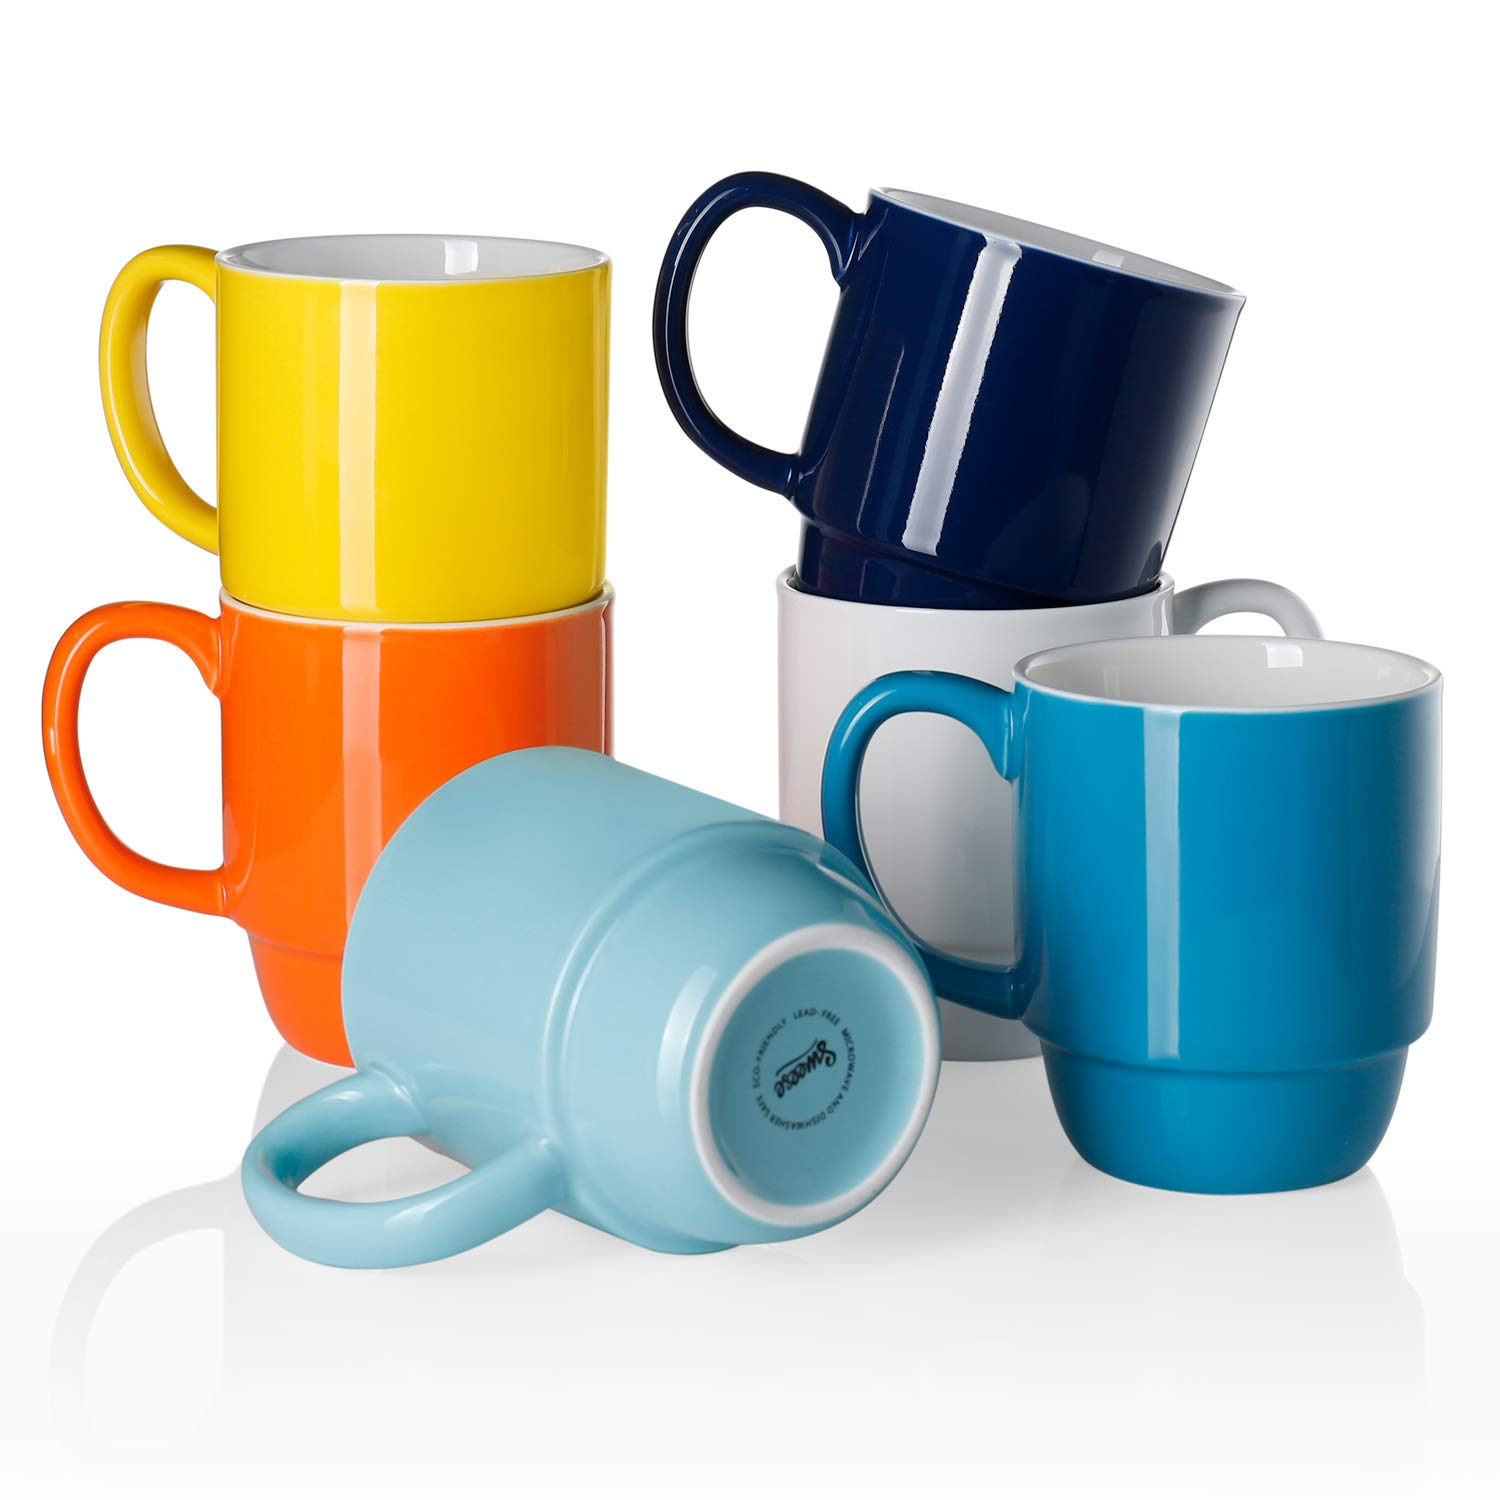 Tea 16 Ounce Porcelain Coffee Cup Sets for Coffee LIFVER Stackable Coffee Mugs Set of 6 Milk